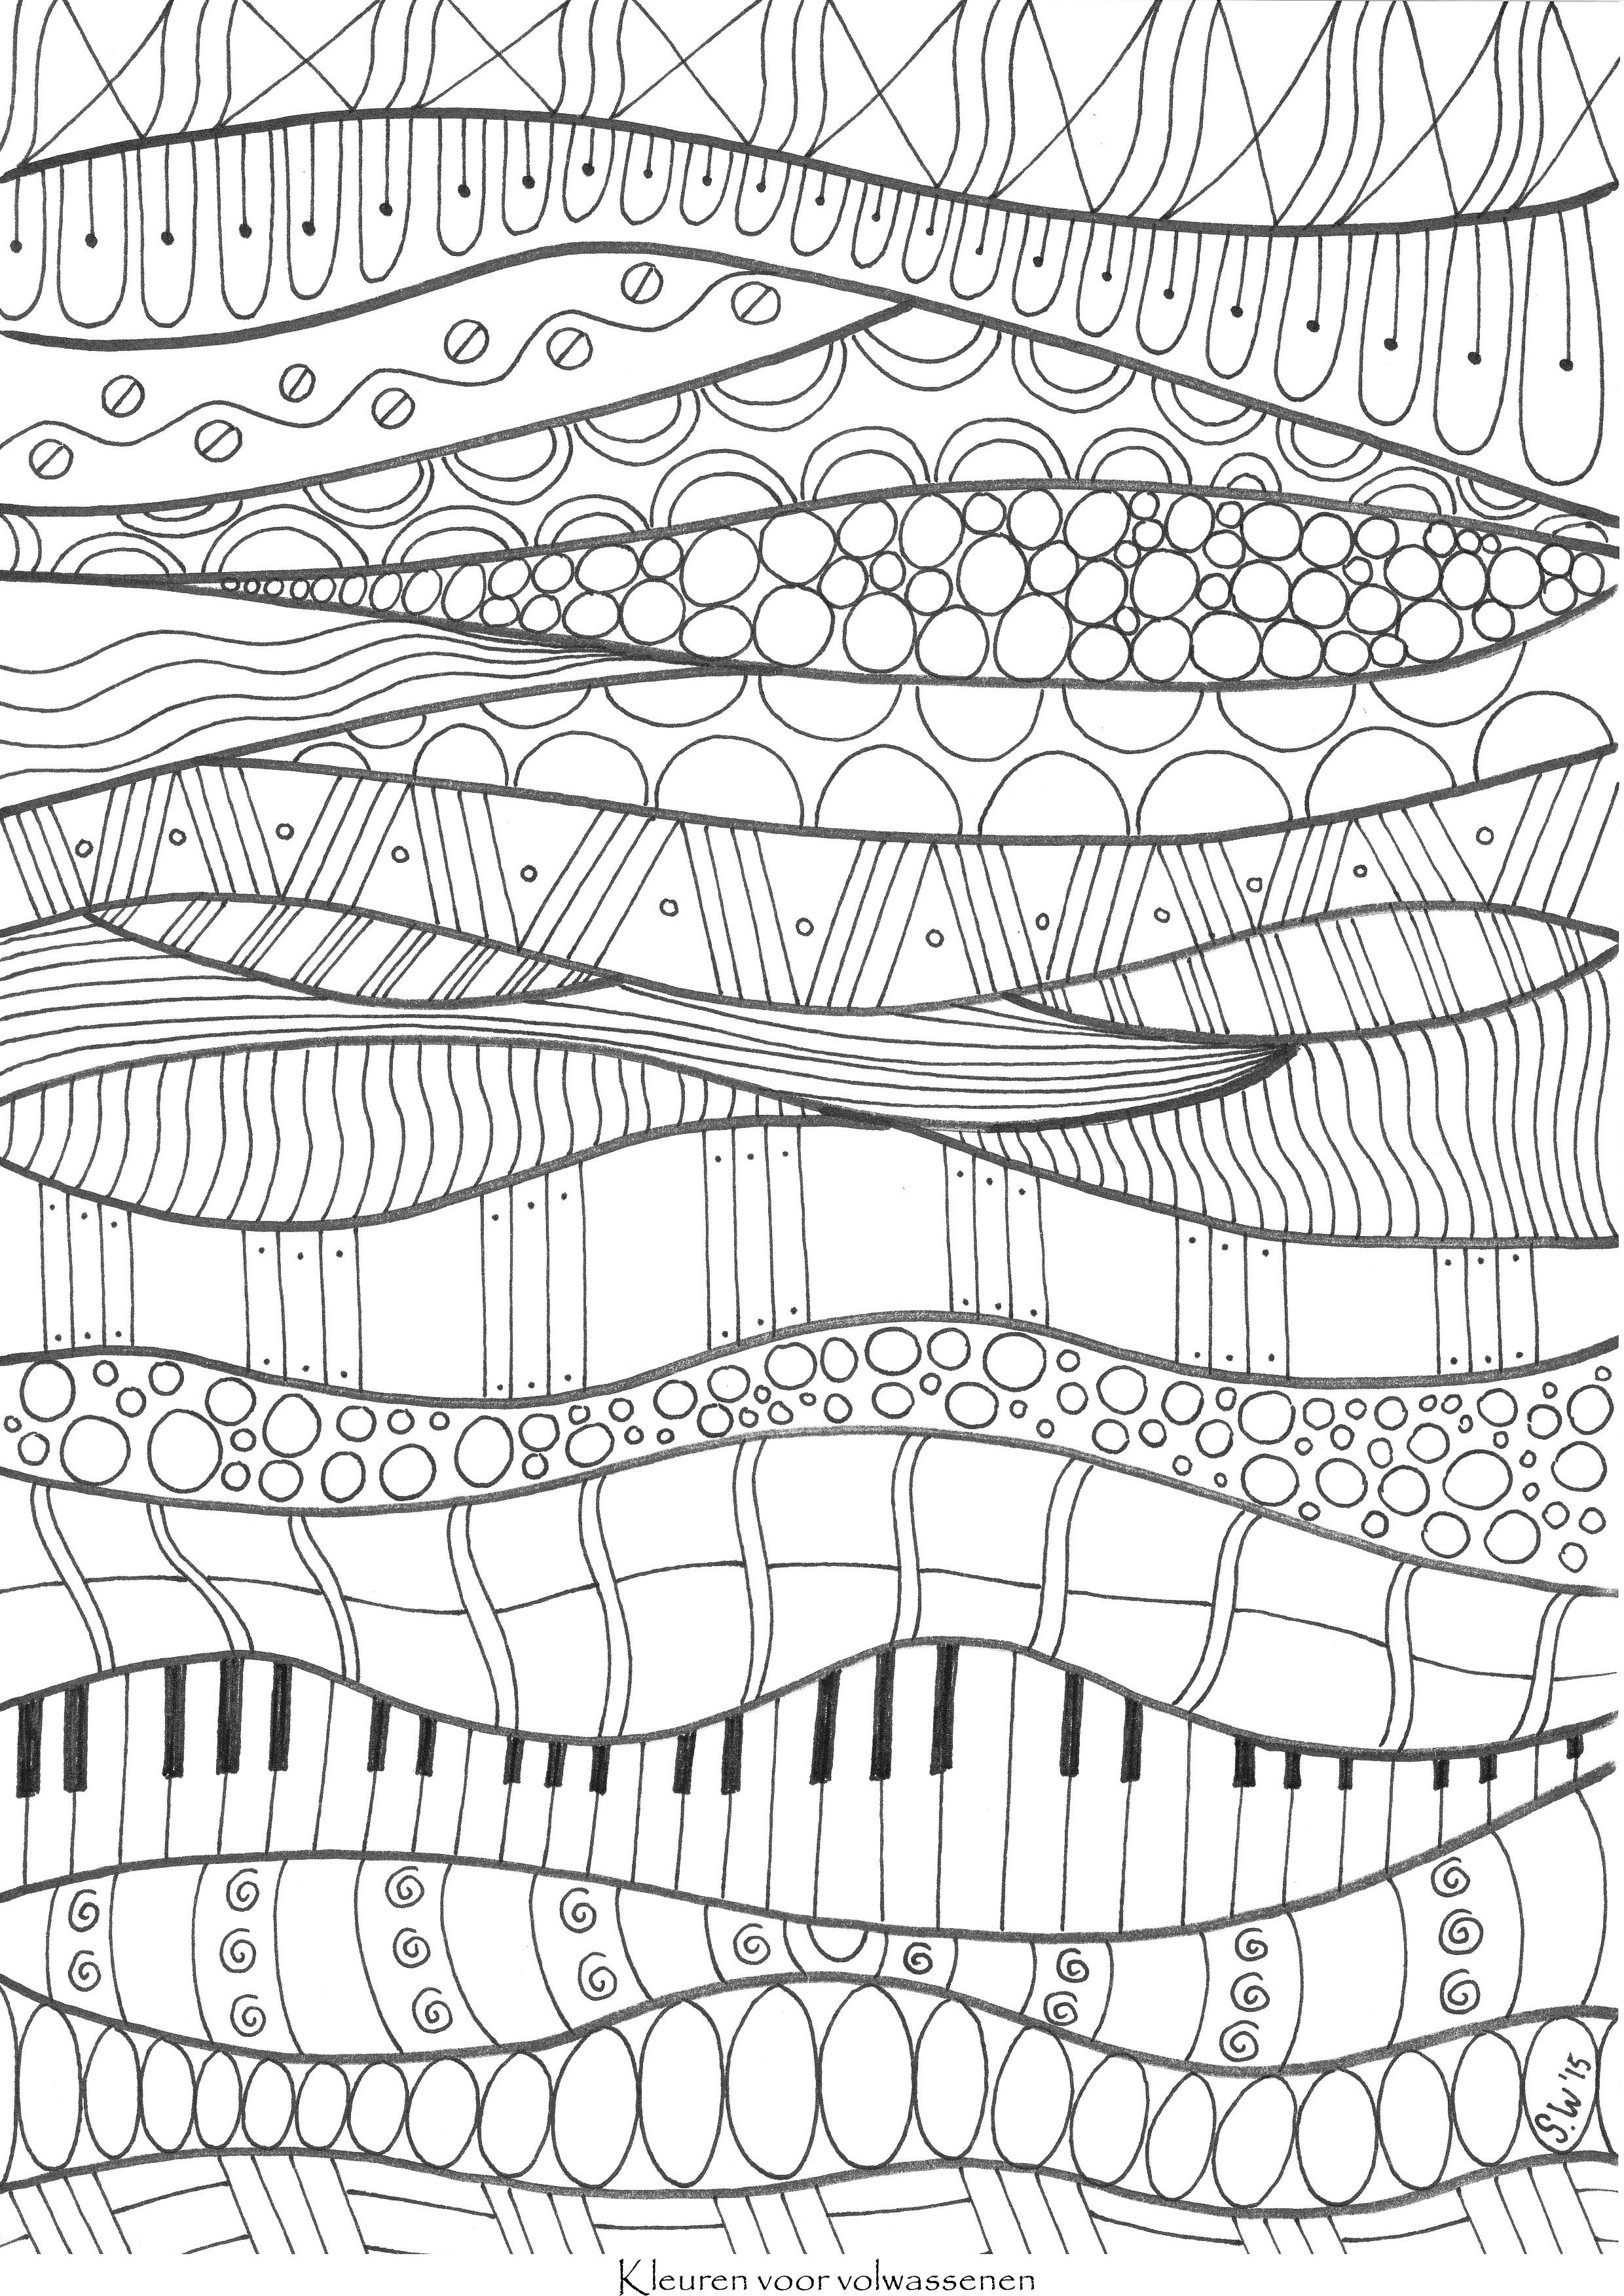 Coloring PageADULT COLORING BOOK PAGESMore Pins Like This At FOSTERGINGER Pinterest